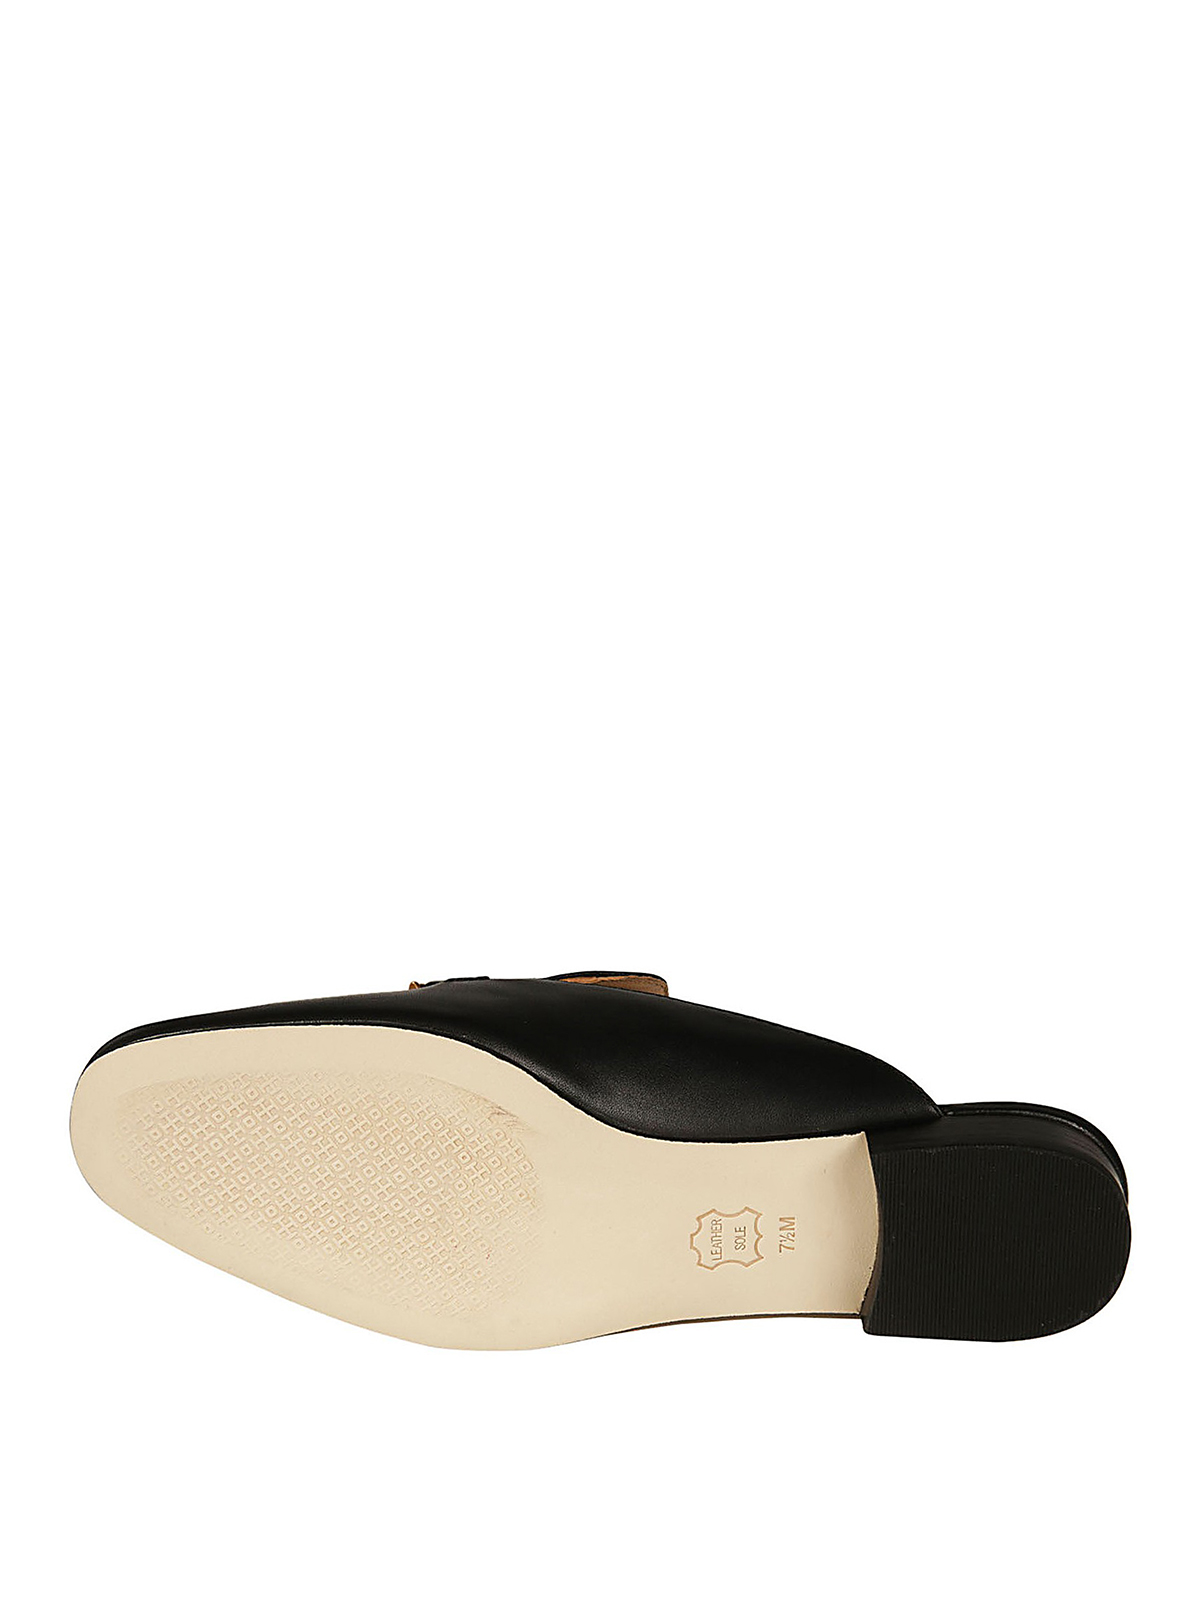 c61be9a67162 Tory Burch - Amelia black leather mules - mules shoes - 48282 006